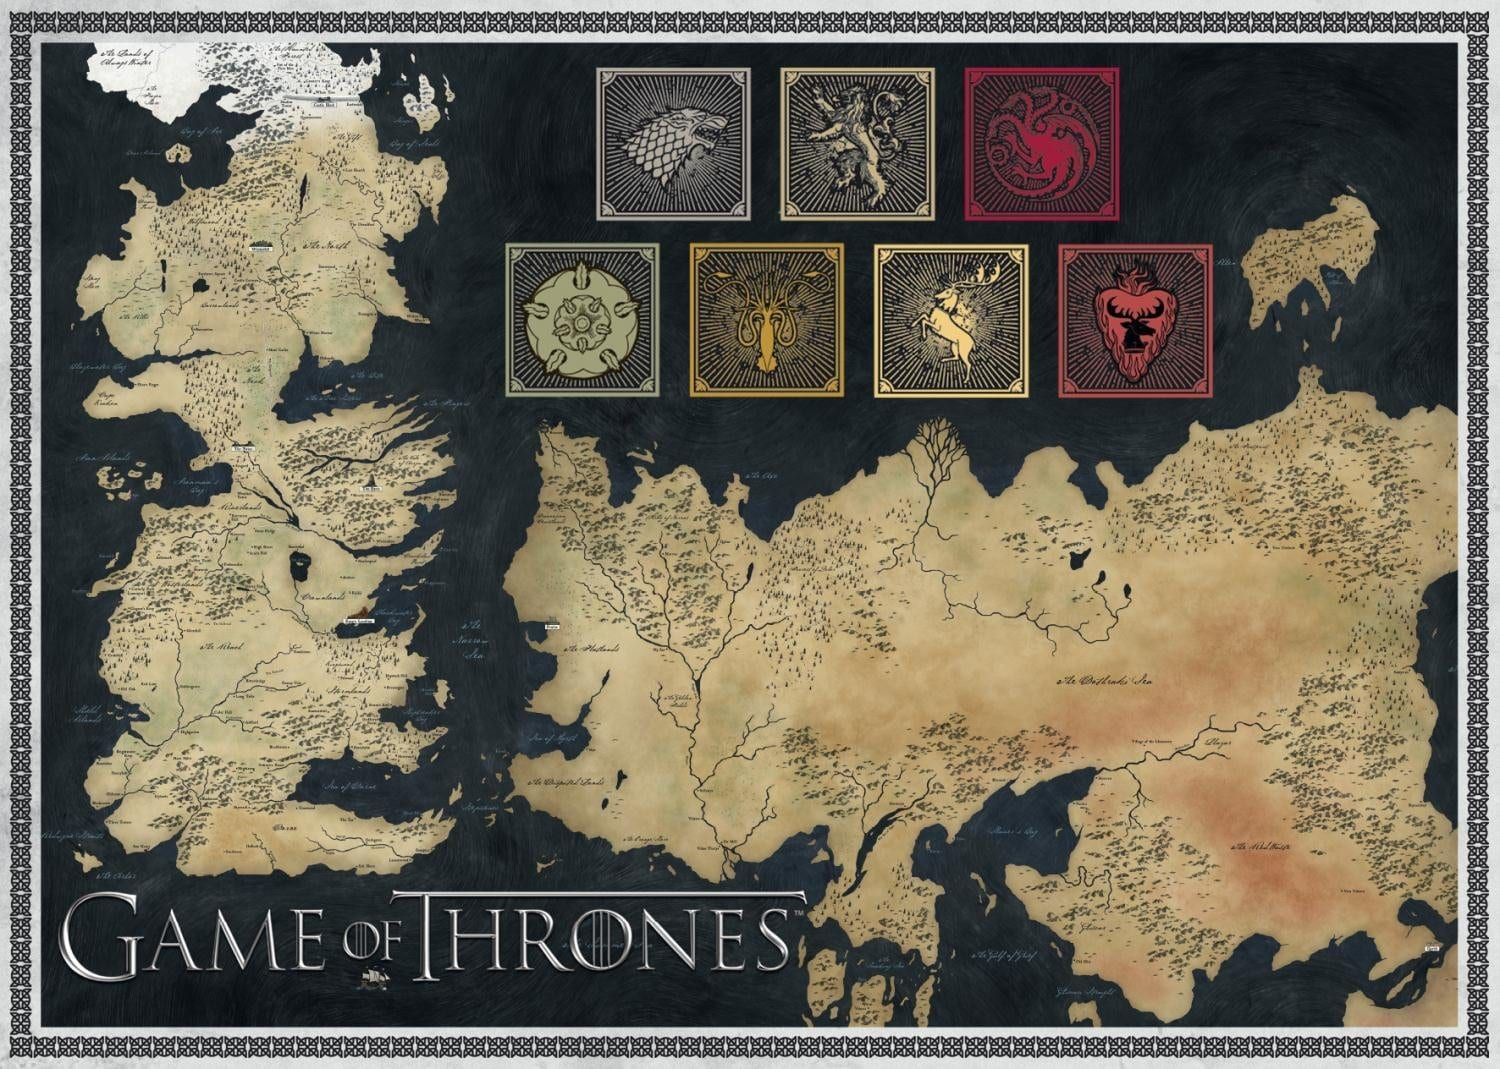 Game of thrones map of the known world jigsaw puzzle 1000 pieces world jigsaw puzzle 1000 pieces gumiabroncs Image collections